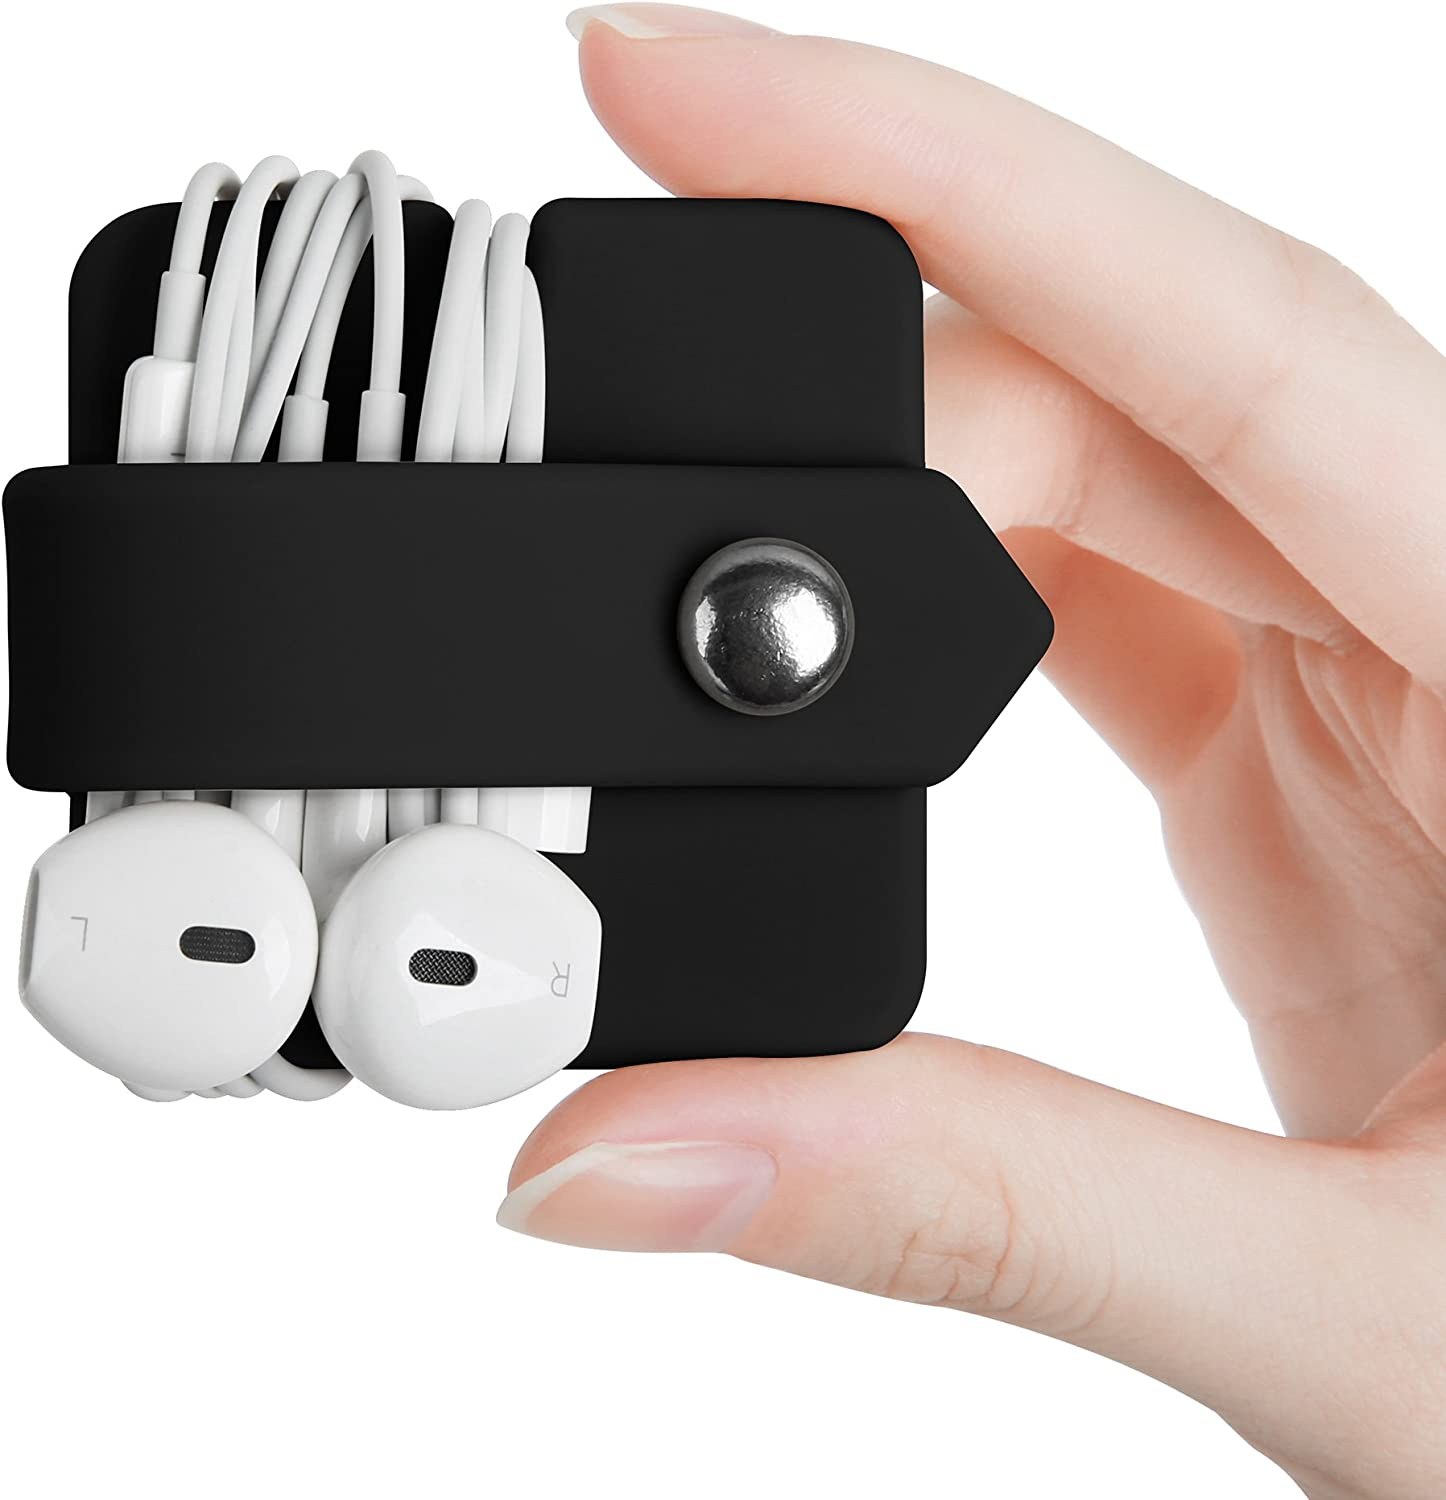 ELFRhino 70% OFF Outlet Headphone Case Cord Earbuds Earphones Organizer Limited price sale Holder